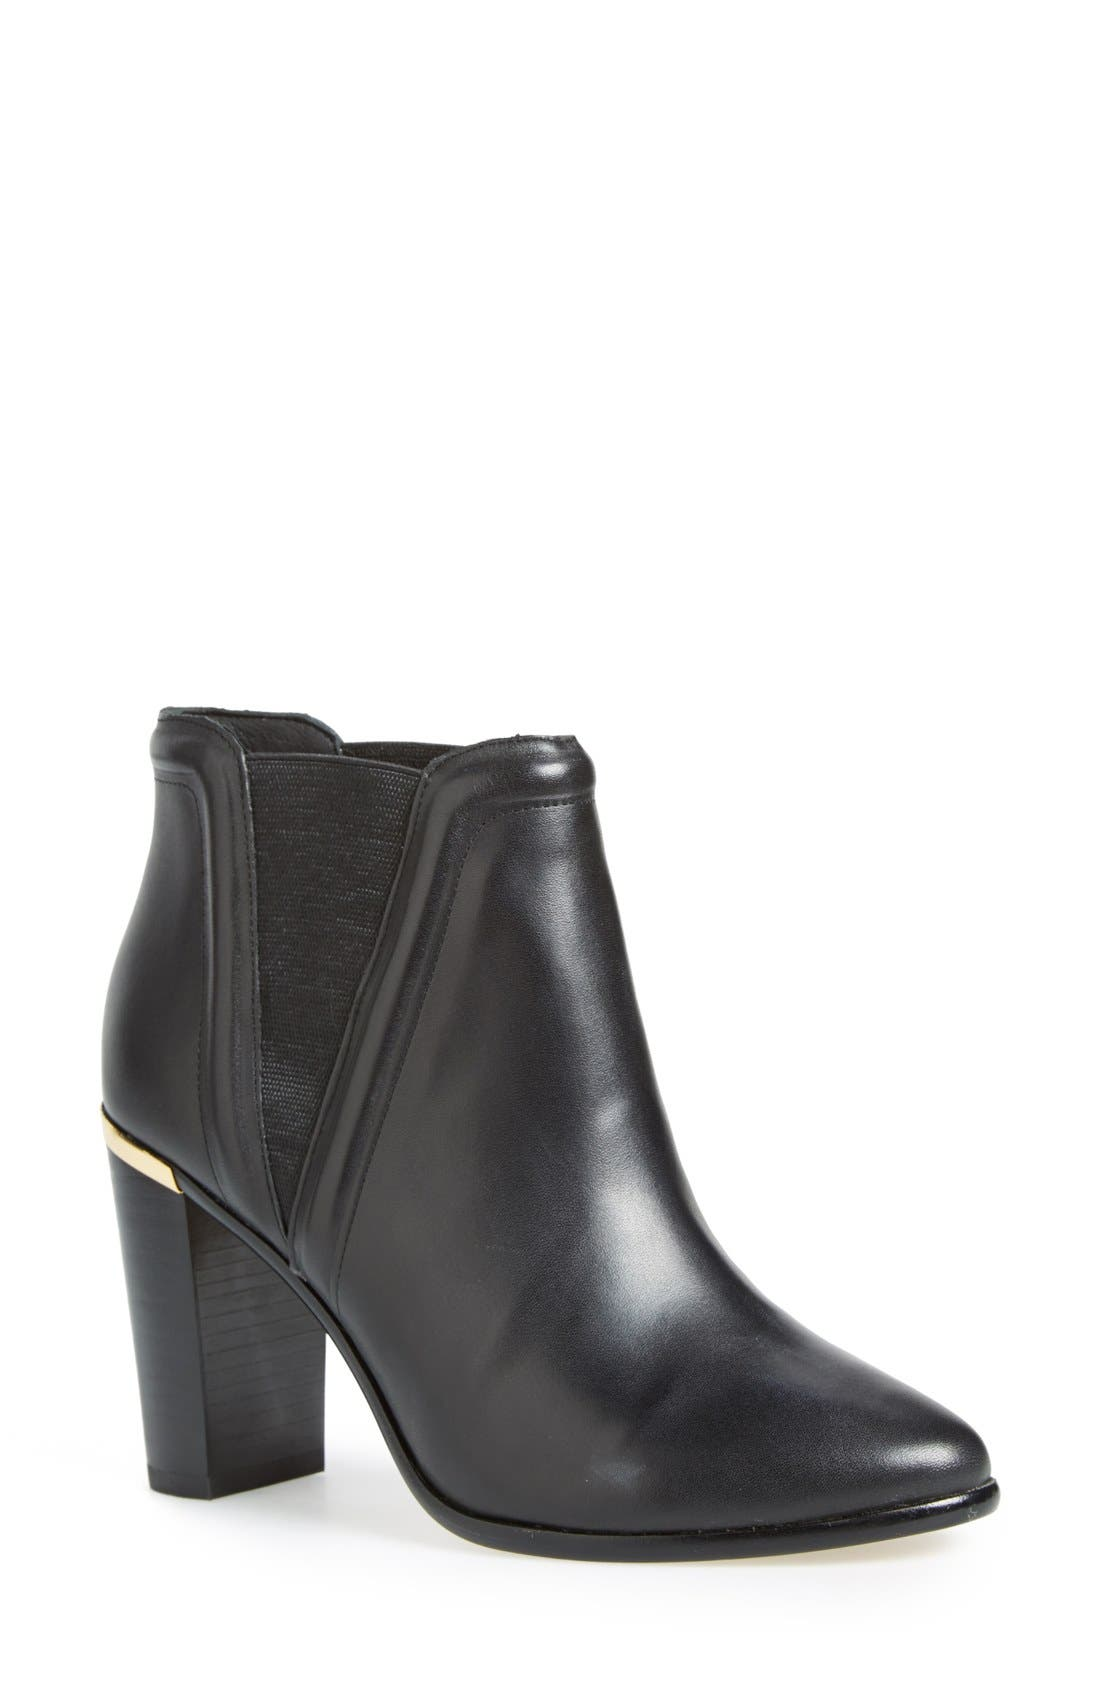 Alternate Image 1 Selected - Ted Baker London 'Thuryn' Bootie (Women)